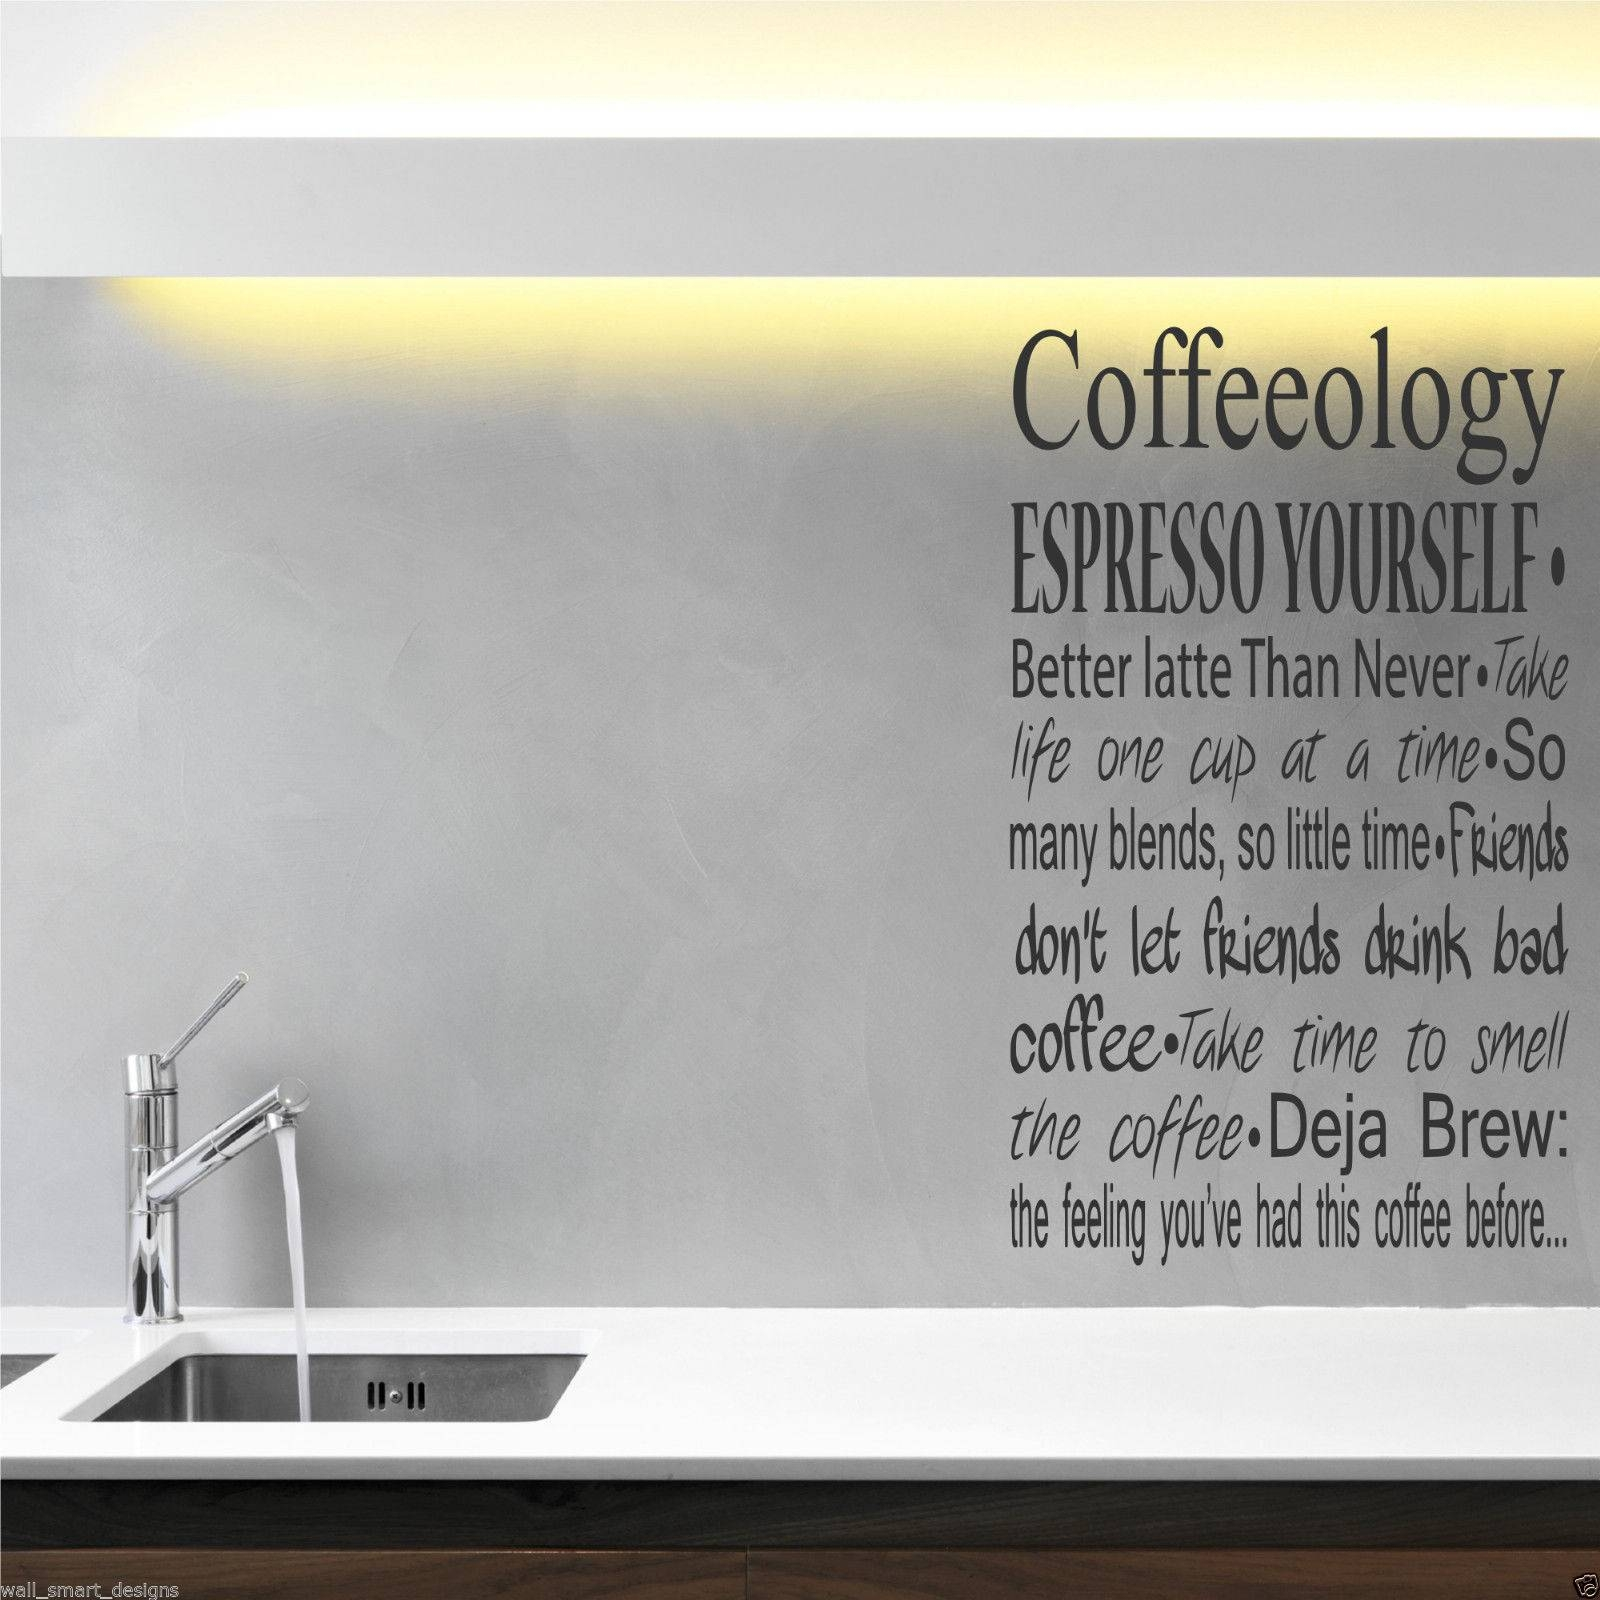 Coffee Coffeeology Kitchen Wall Art Sticker Quote Decal Mural For Latest Cafe Latte Kitchen Wall Art (View 10 of 30)